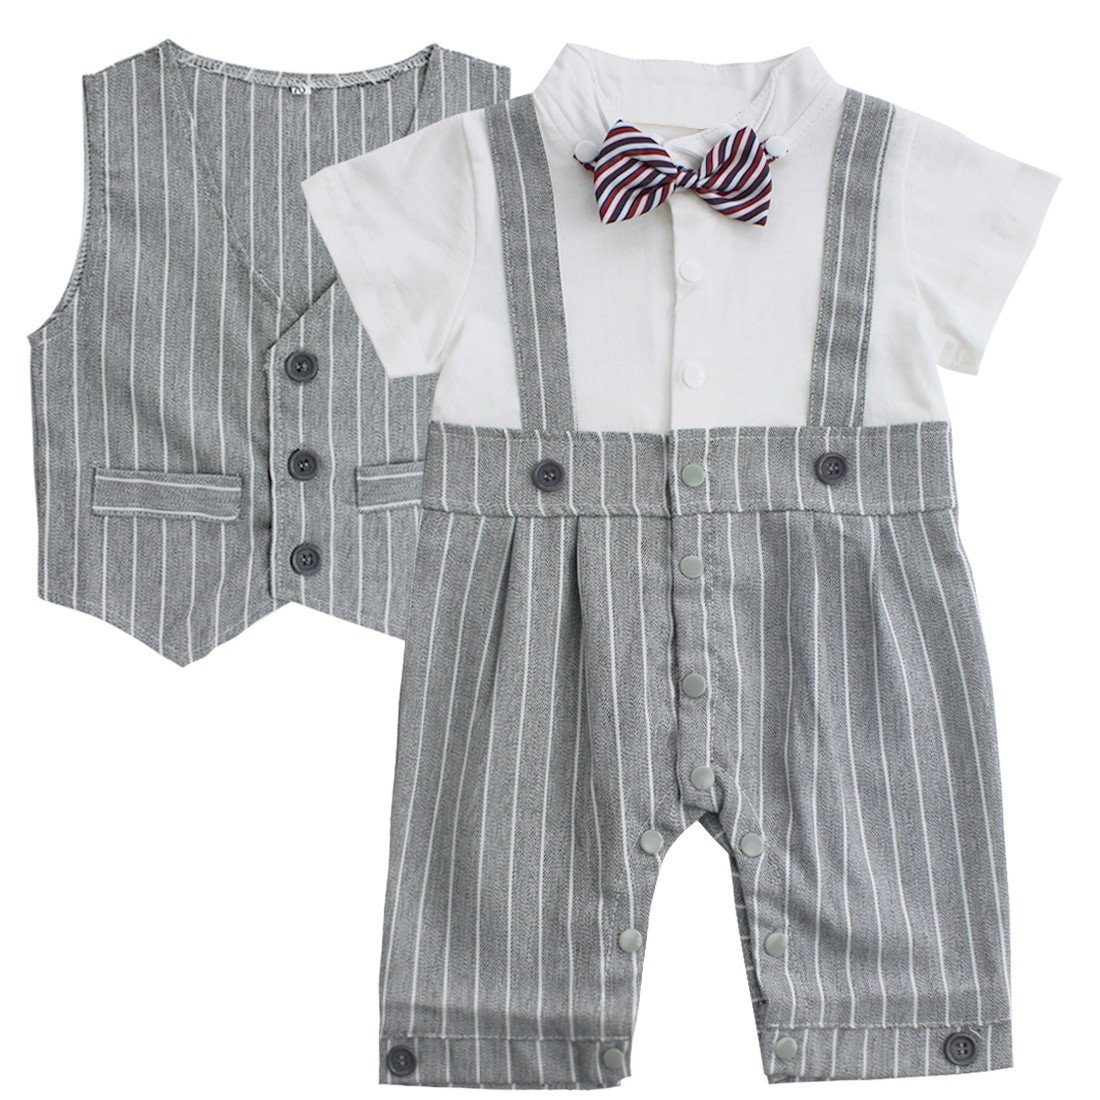 iEFiEL Newborn Baby Boys' 2PCS Gentleman Suit Bowtie Striped Romper with Waistcoat Formal Party Fancy Outfits